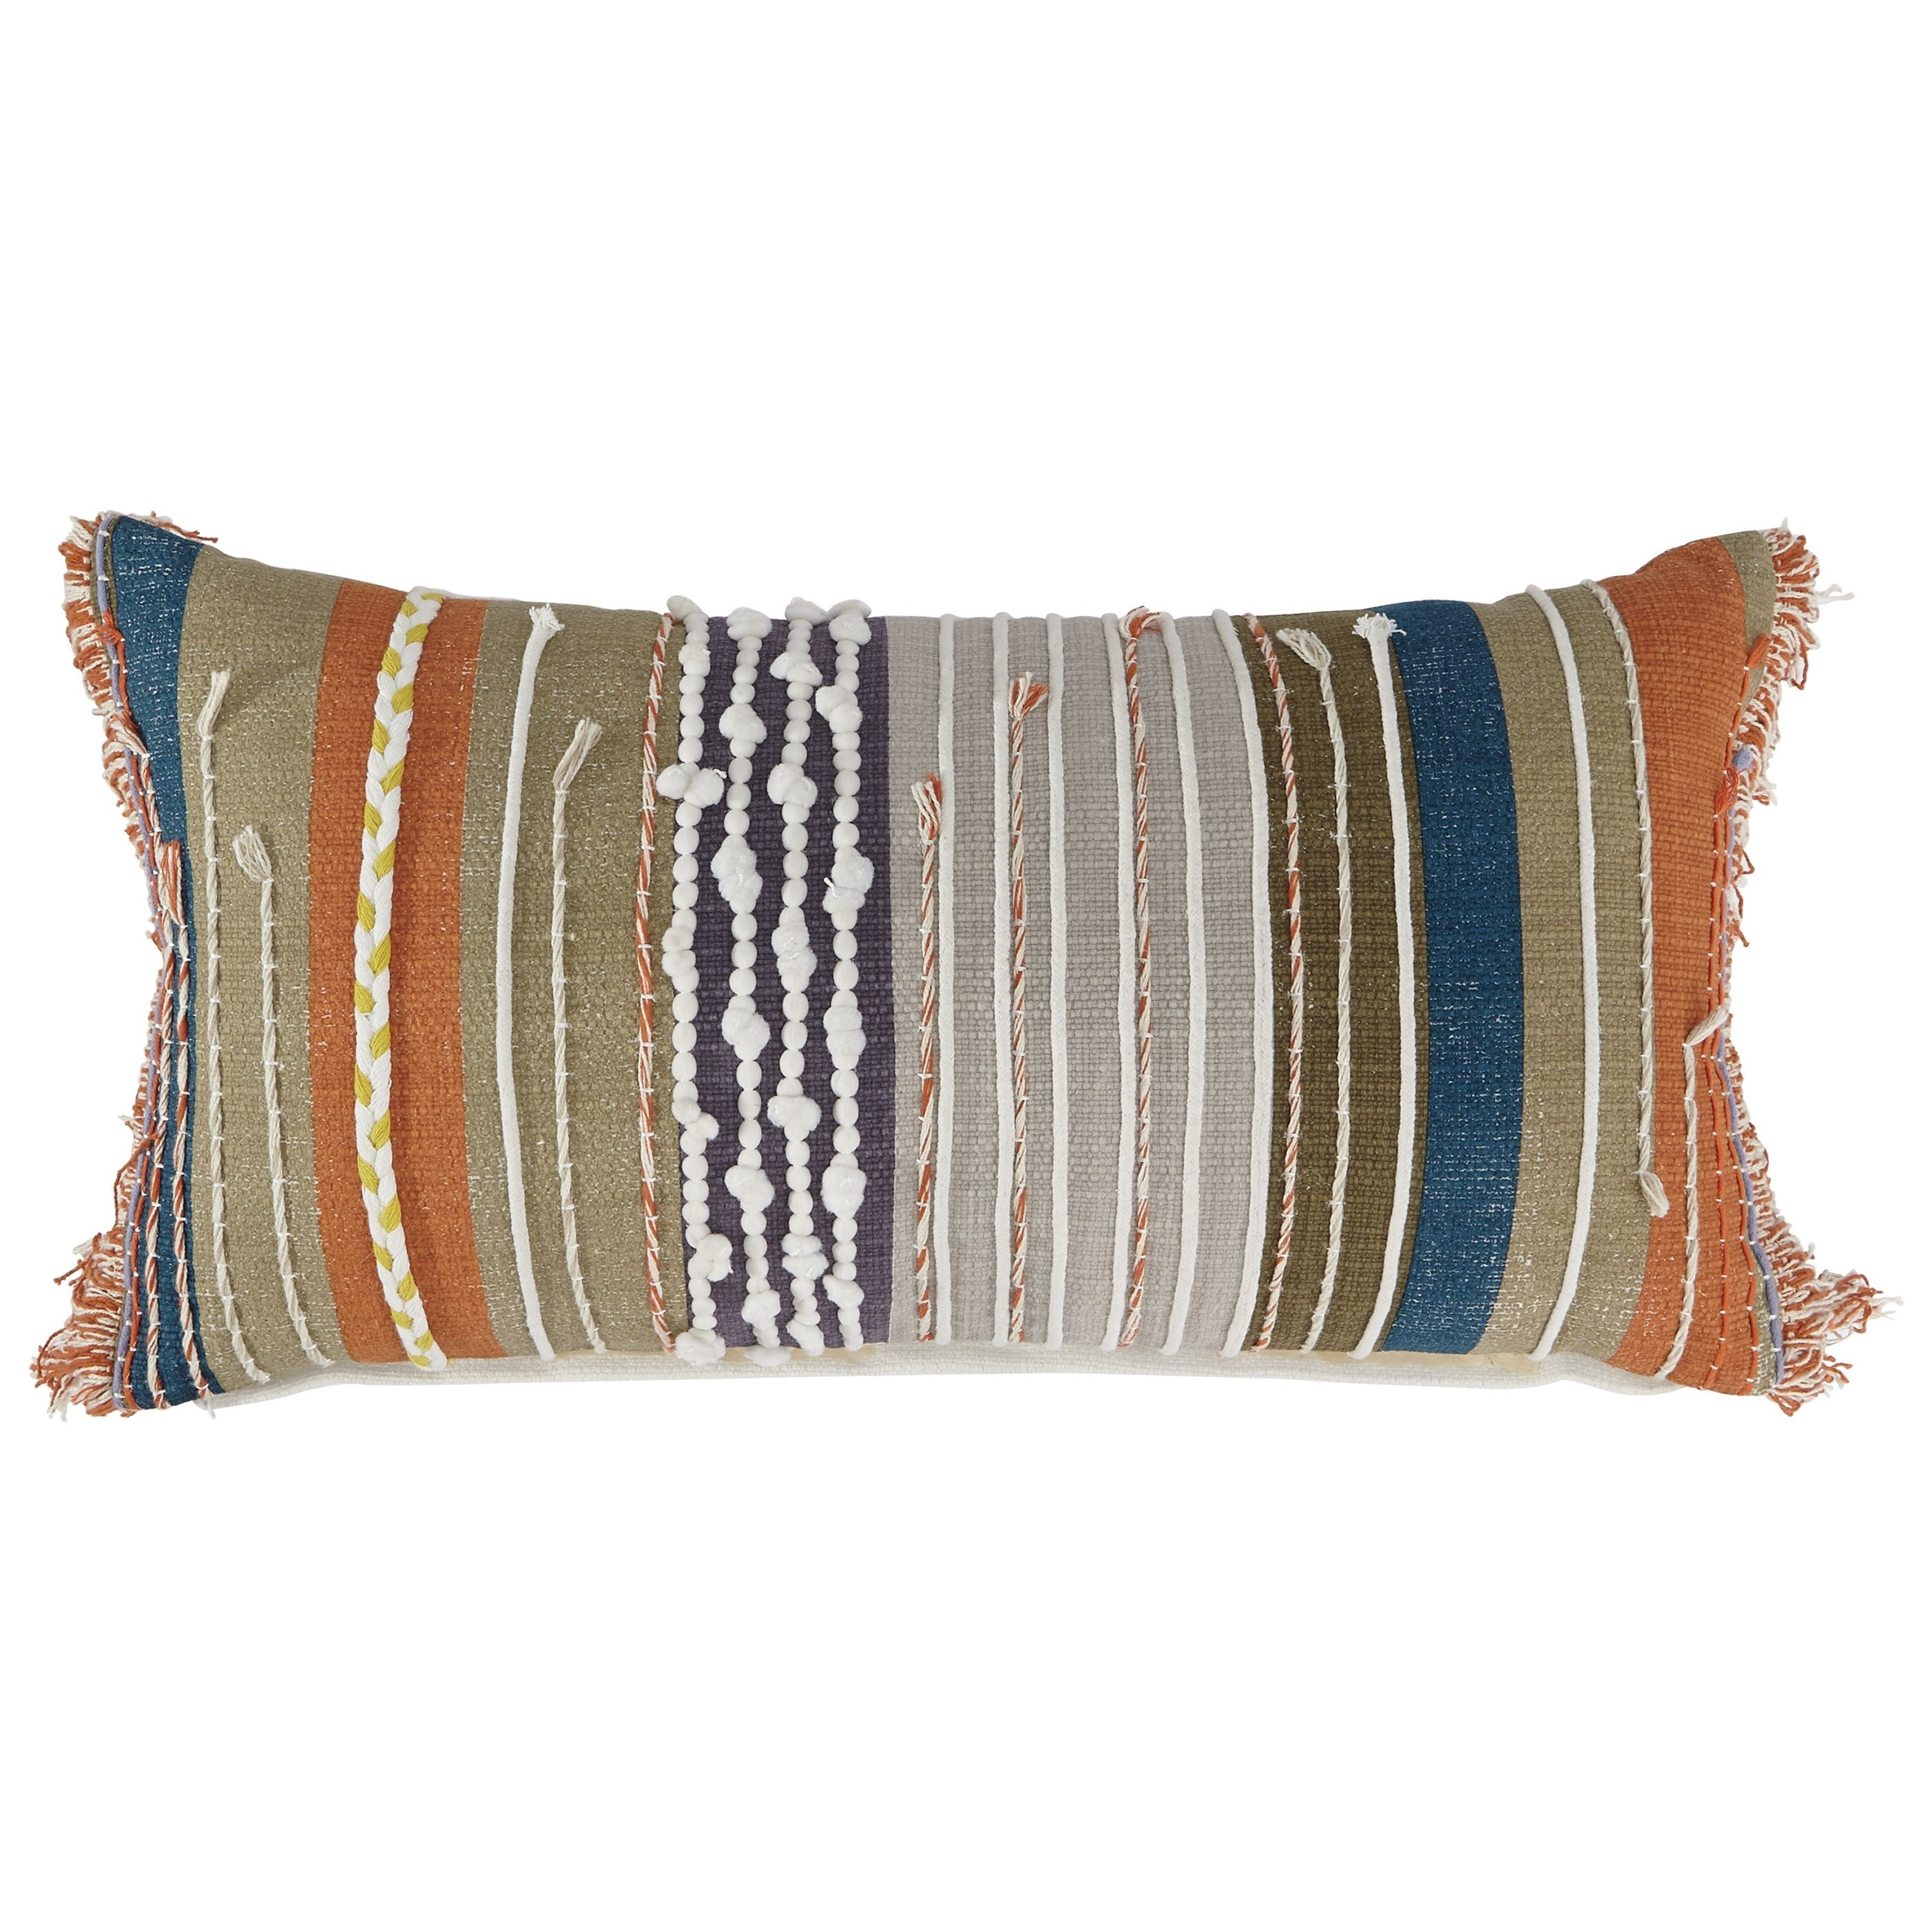 Signature Design by Ashley Pillows Dereon Multicolor Boho Pillow - Item Number: A1000817P